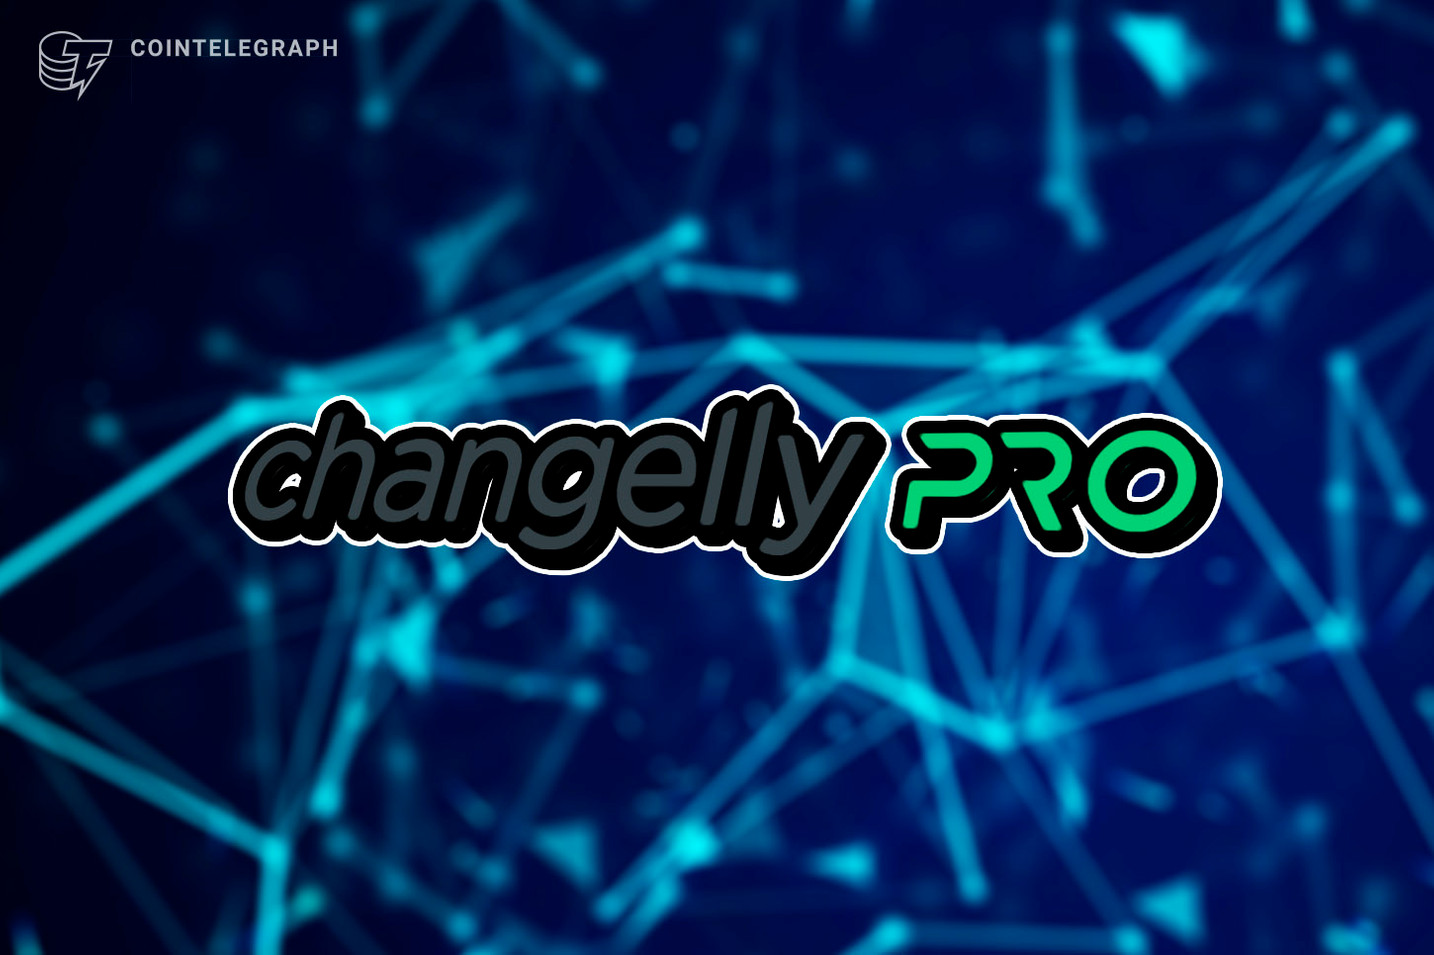 TON Crystal is now available on Changelly PRO